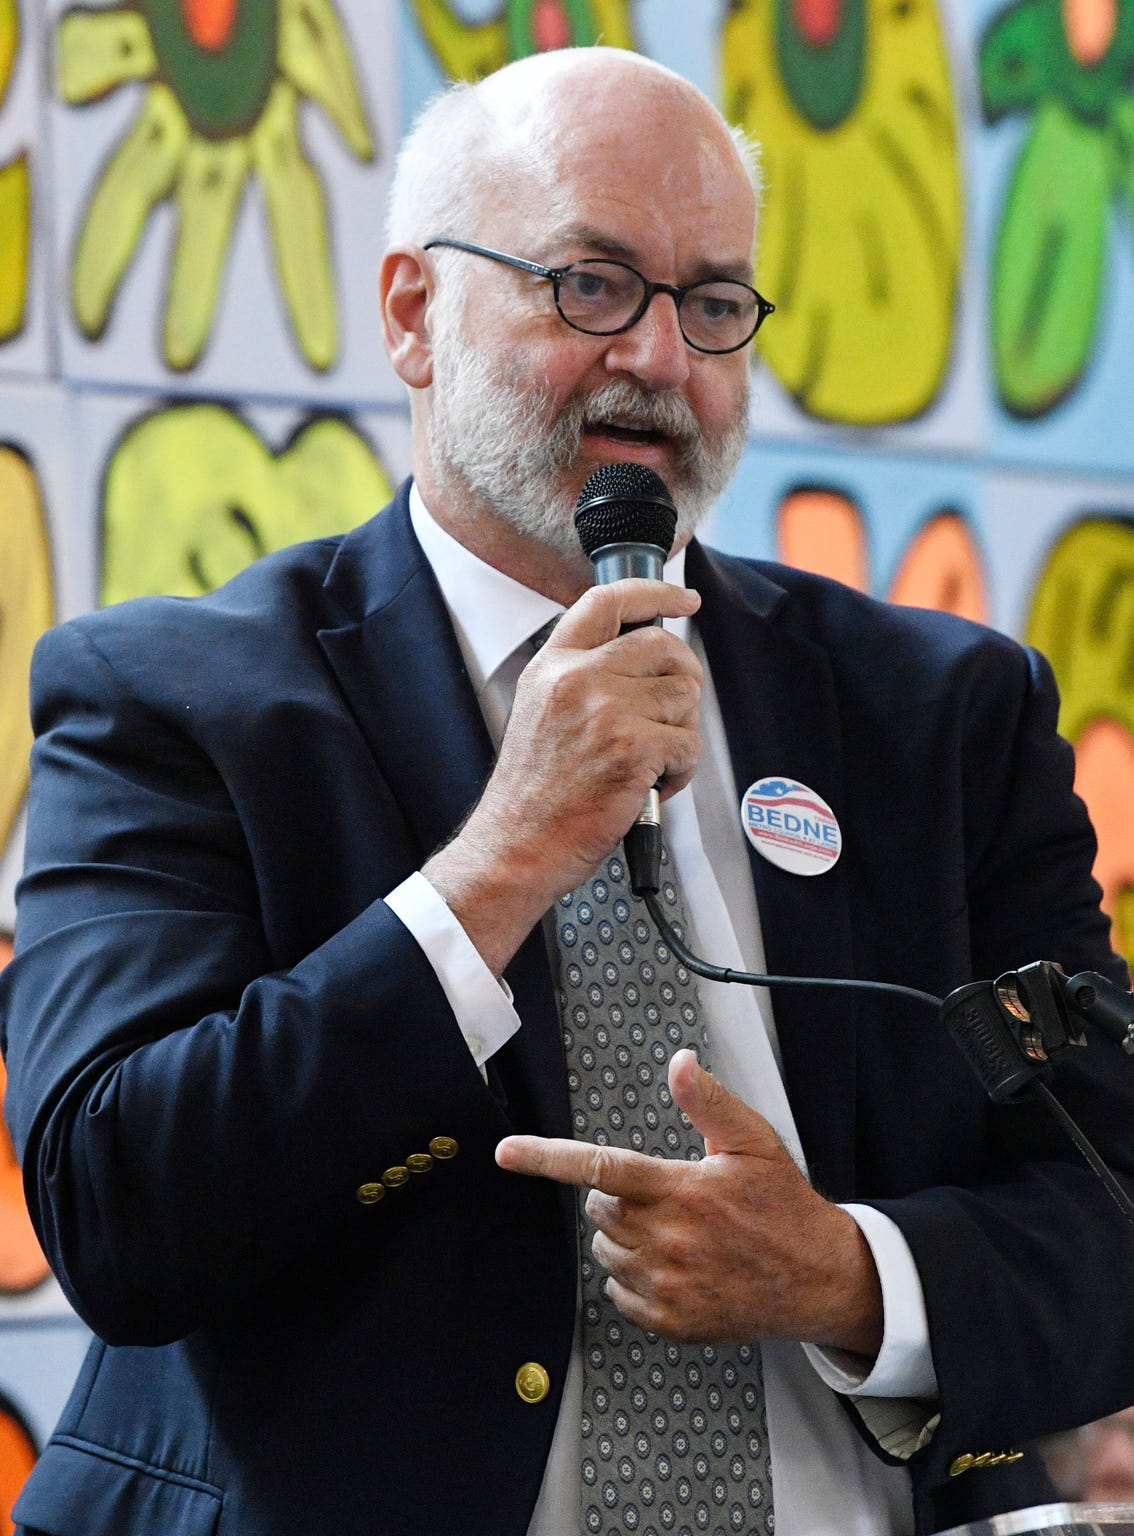 Fabian Bedne, 2019 candidate for Nashville-Davidson County At-Large Metro Council speaks at a forum for the 8 at-large Metro Nashville runoff candidates at the Nashville Farmers Market. Sunday, Aug. 25, 2019, in Nashville, Tenn.